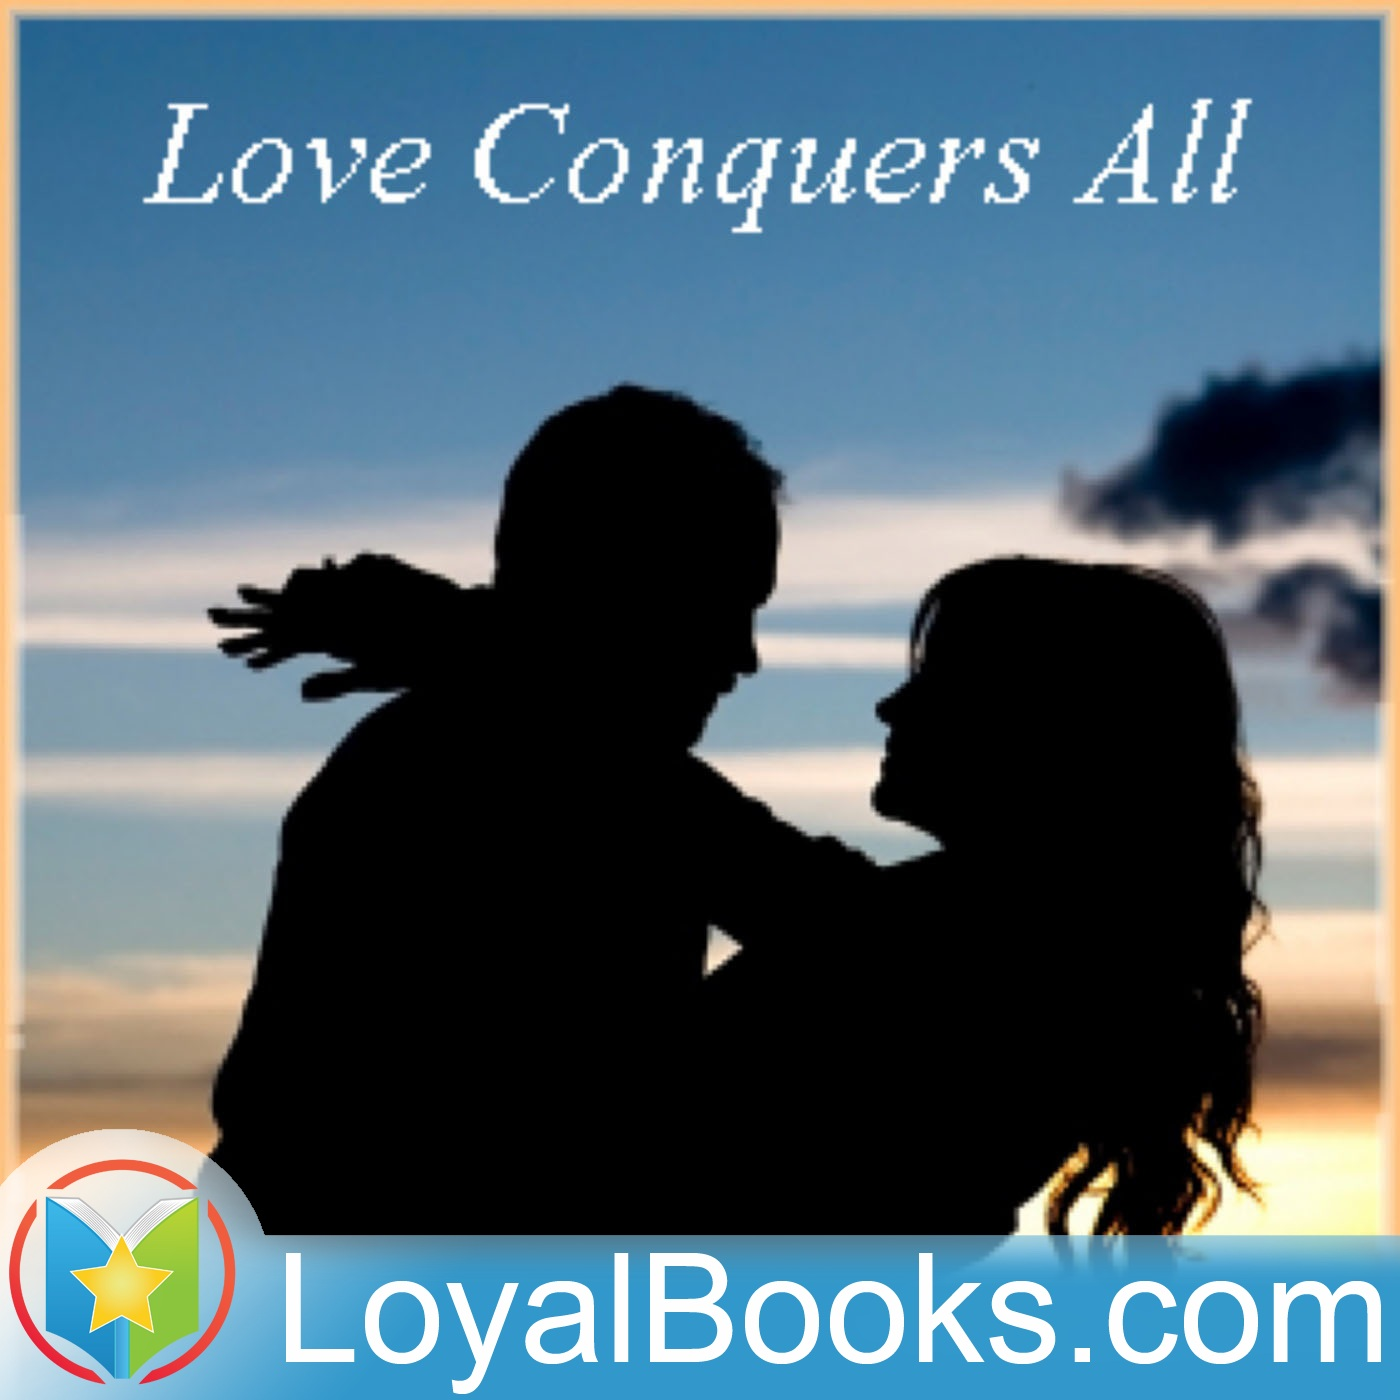 <![CDATA[Love Conquers All by Robert Benchley]]>